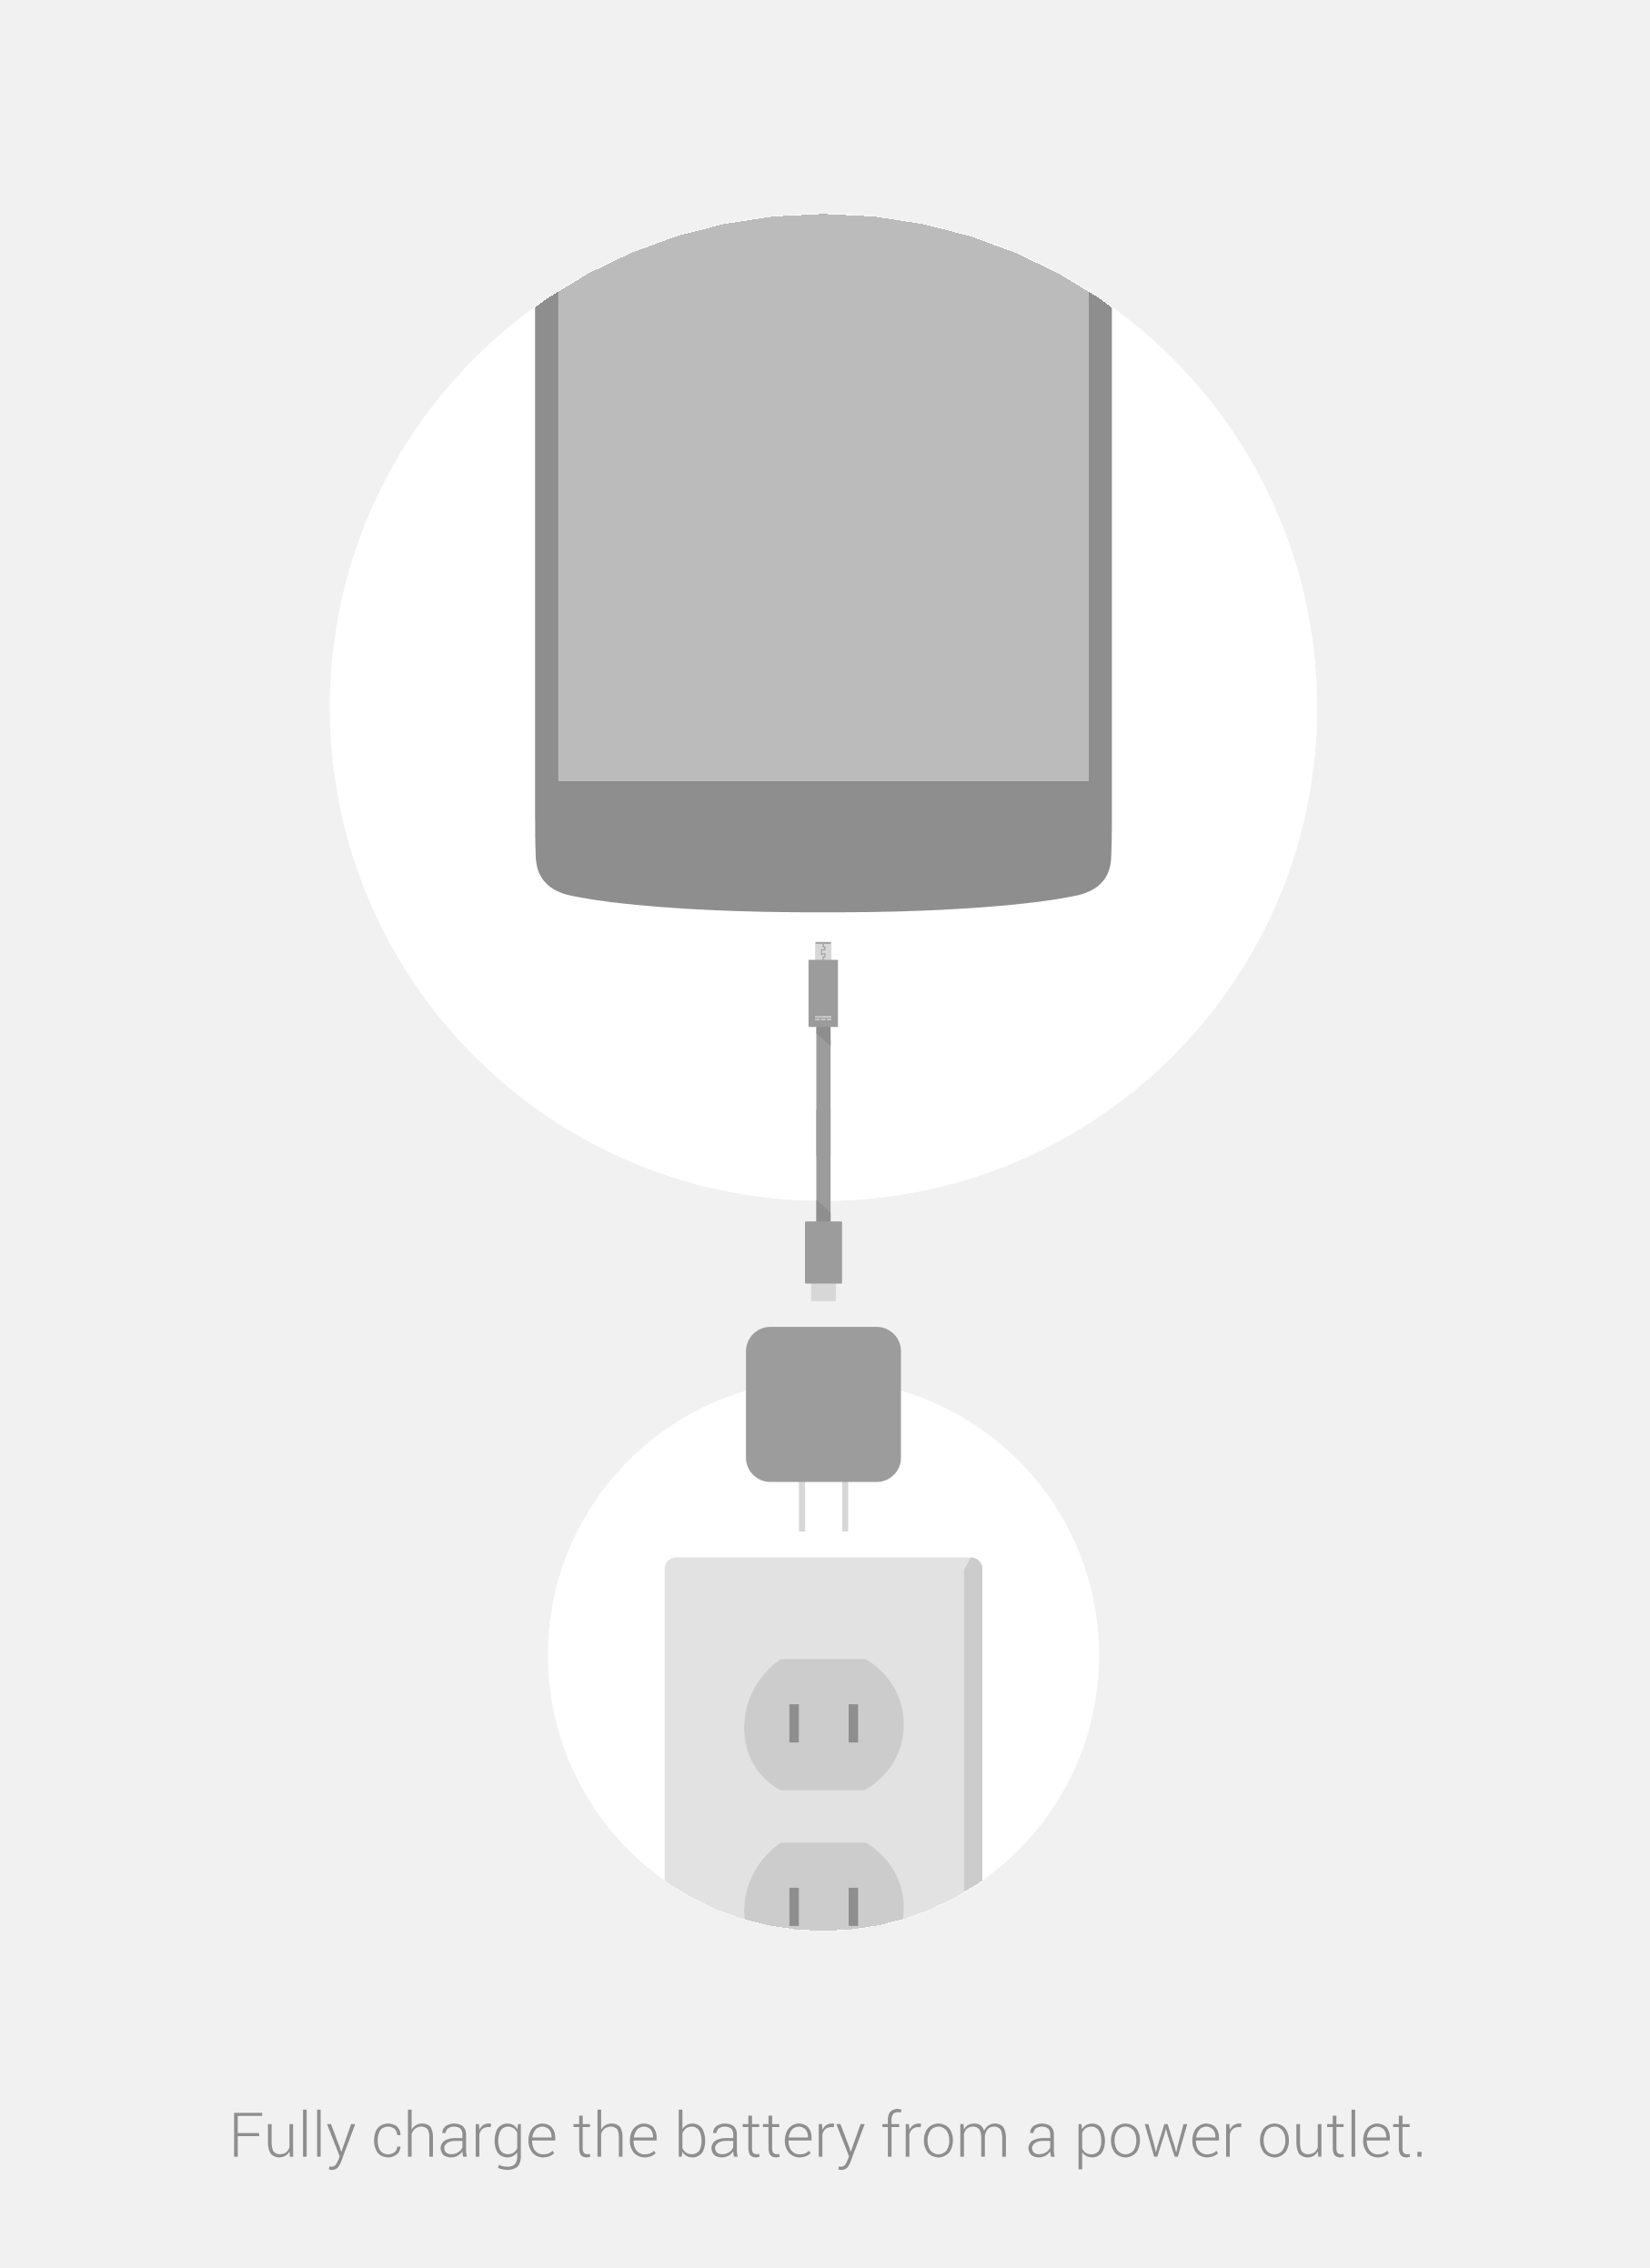 User manual for LG Nexus 5. Guid Pleas guide Shou will g fault, and a the c  acce retur Expo Radio